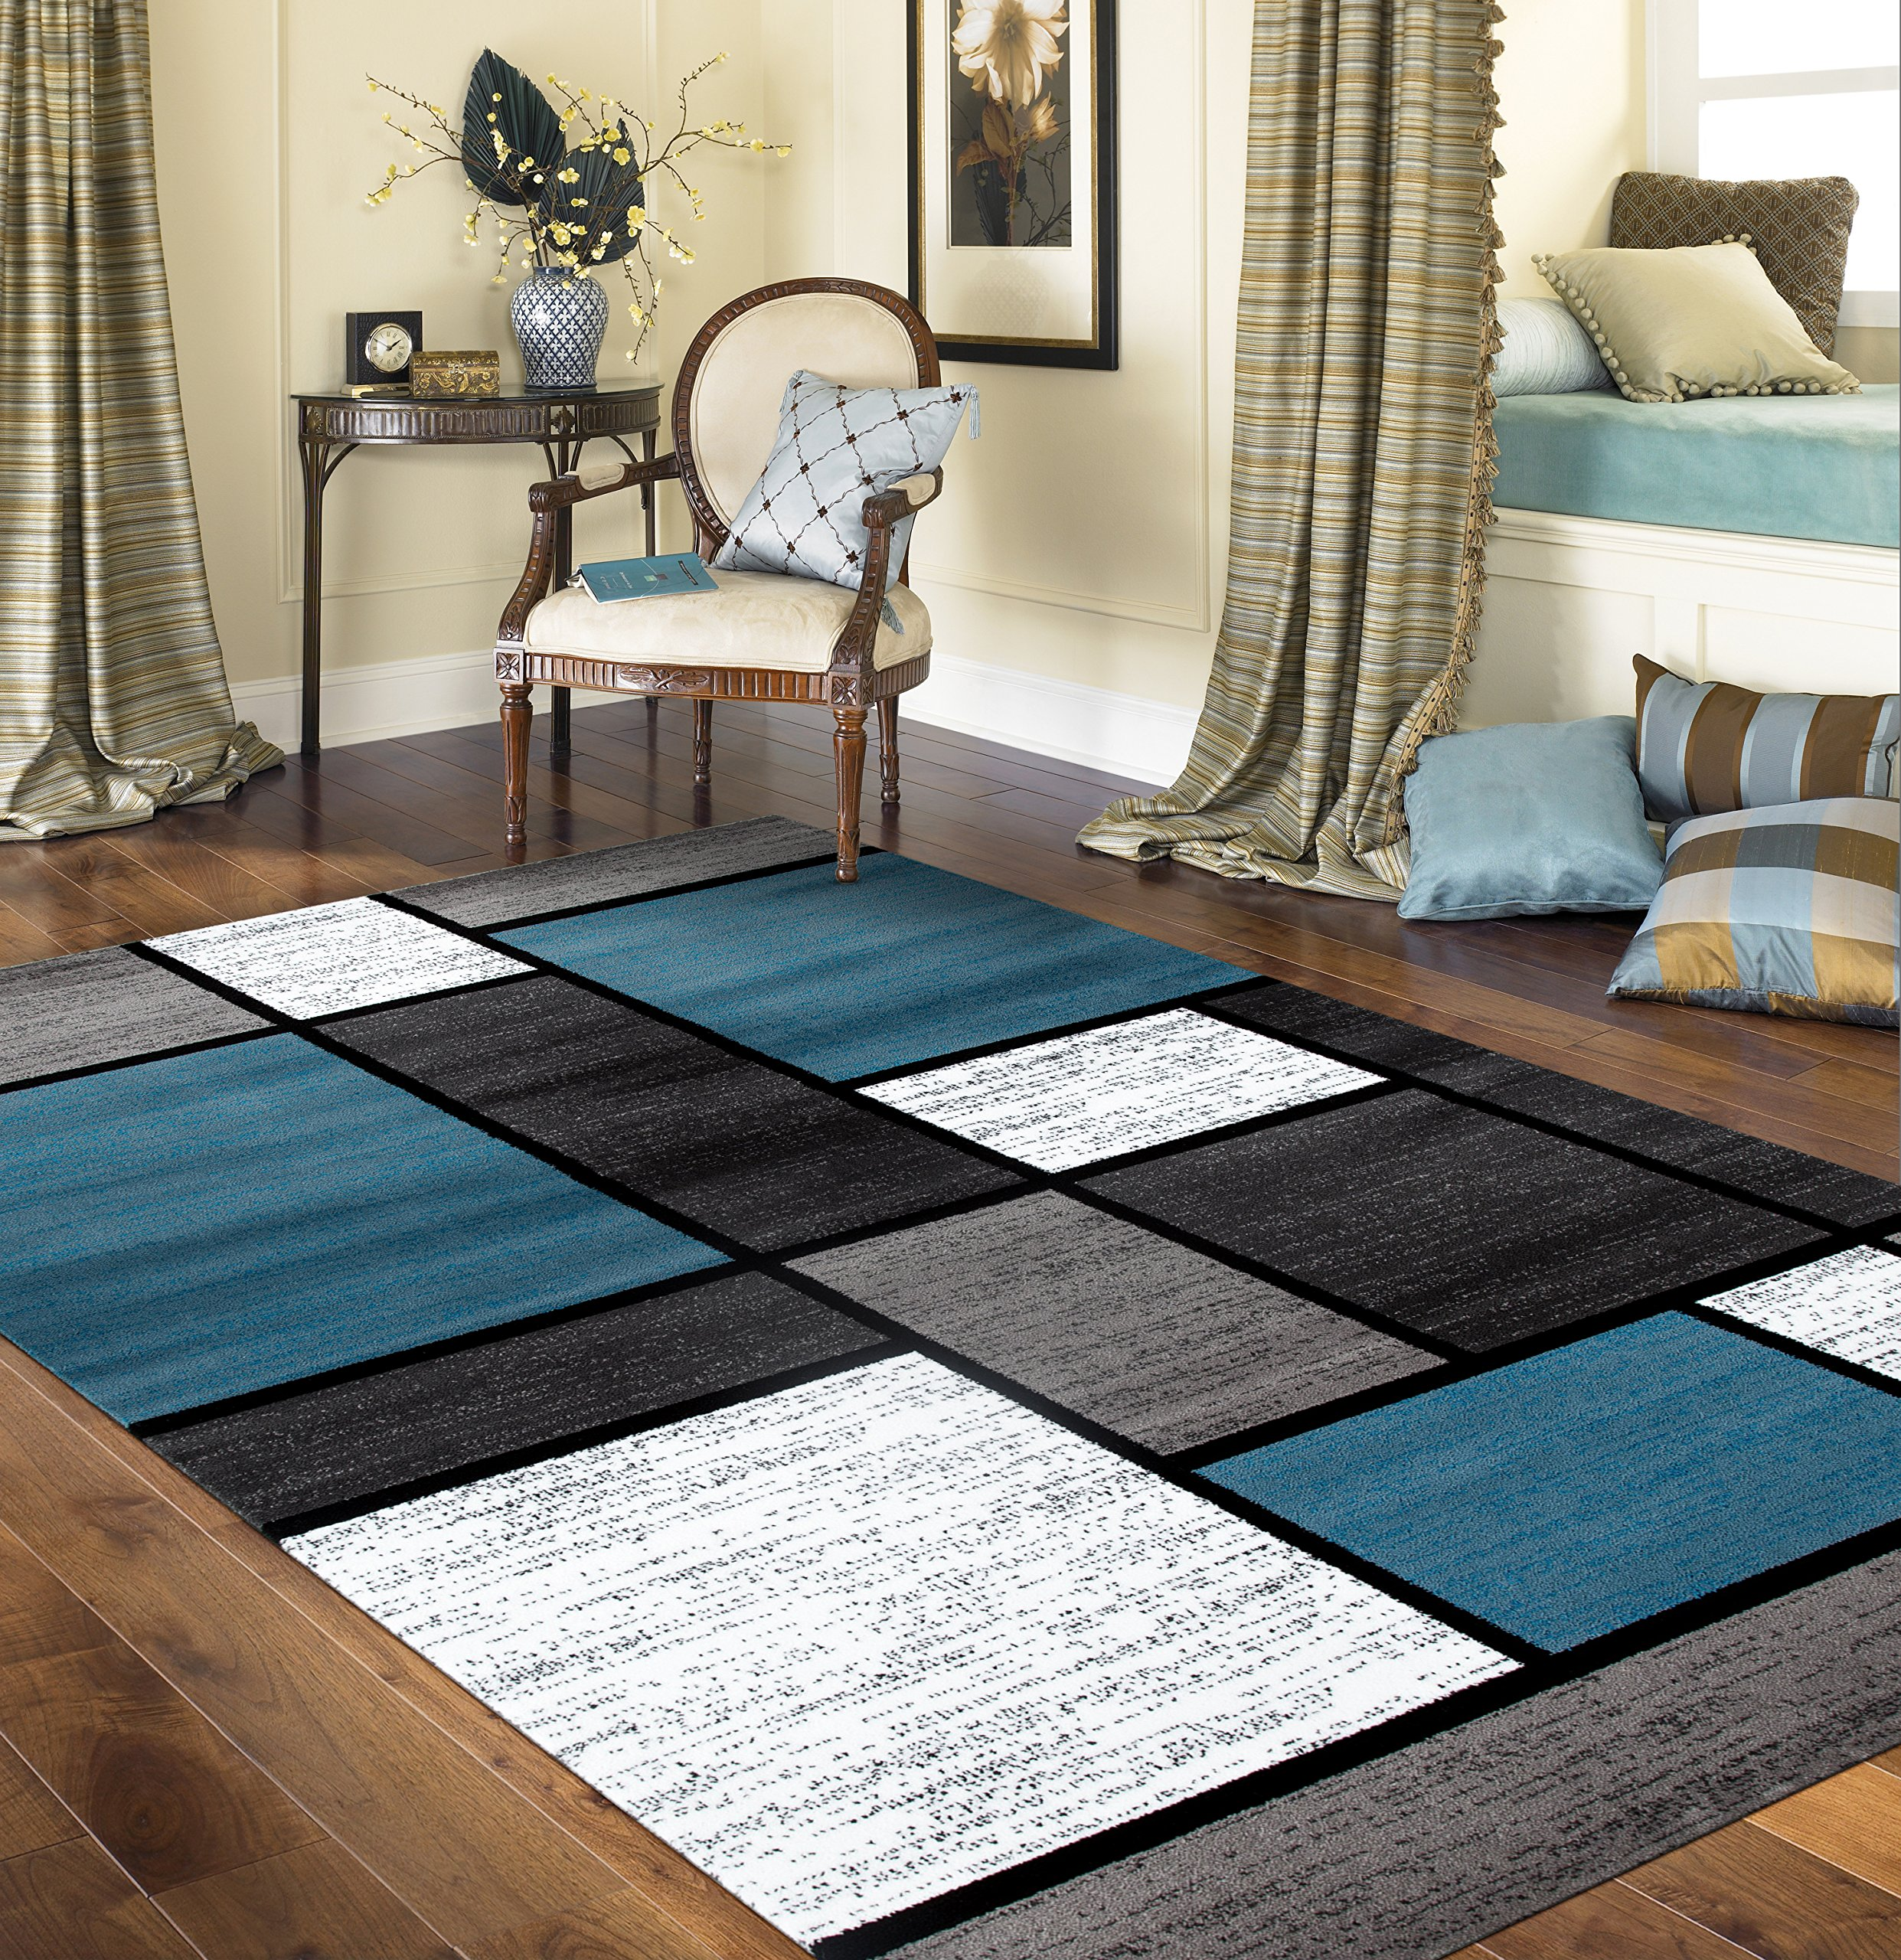 Rugshop Contemporary Modern Boxes Area Rug 9' X 12' Blue/Gray by Rugshop